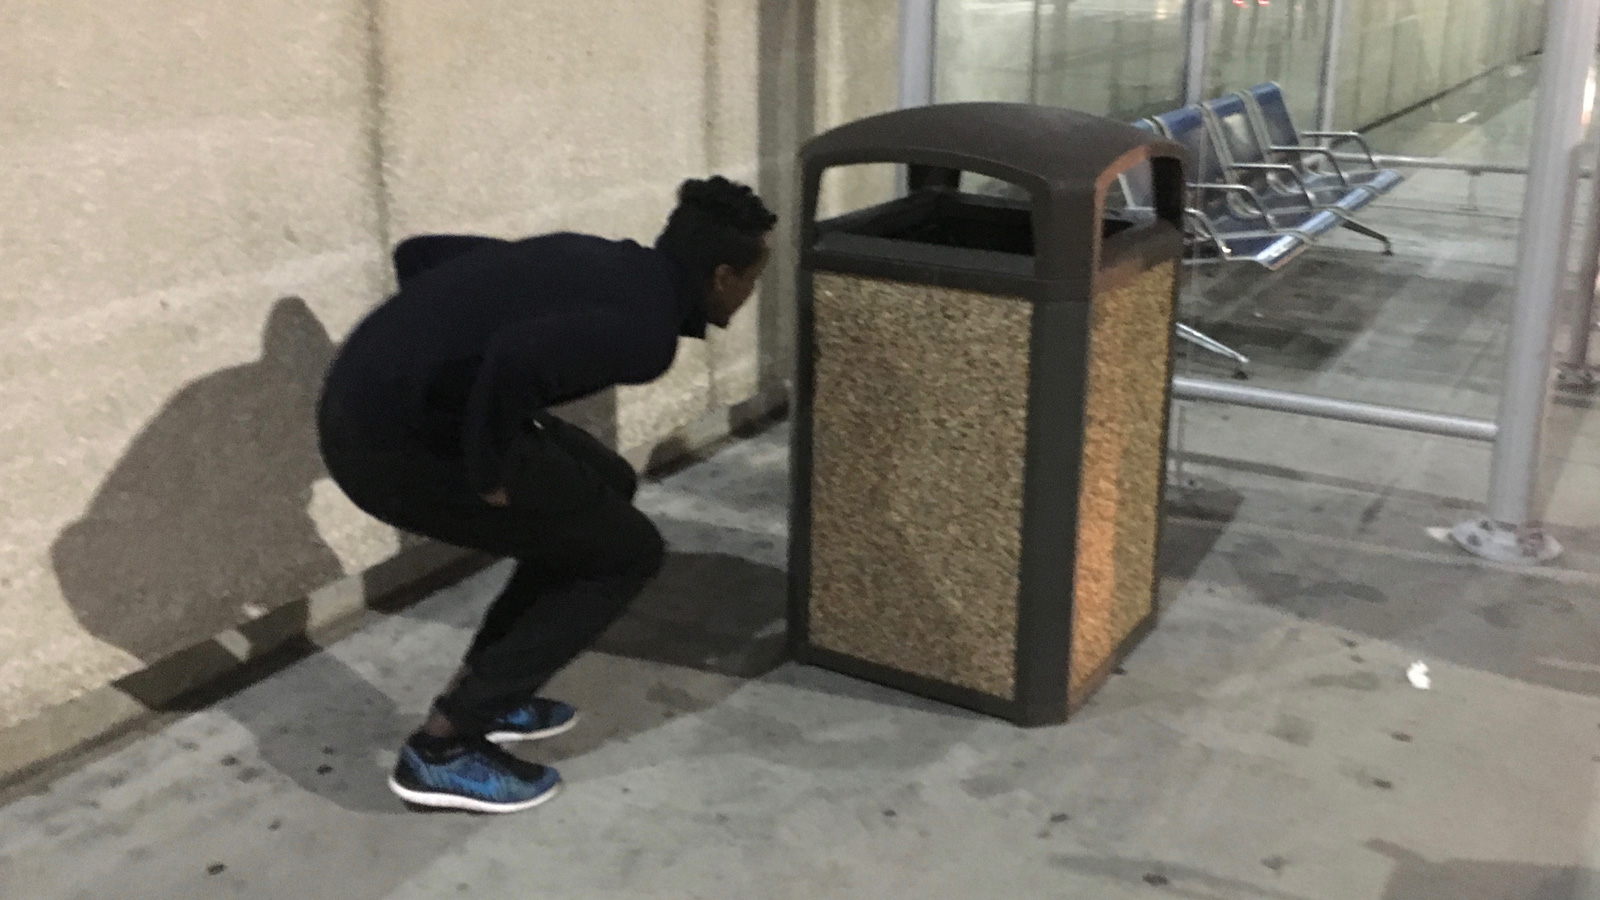 Saadiq Mohammed hides behind a trash can outside of Lambert-St. Louis International Airport, waiting to surprise Sa'ad Hussein upon his arrival to the USA.